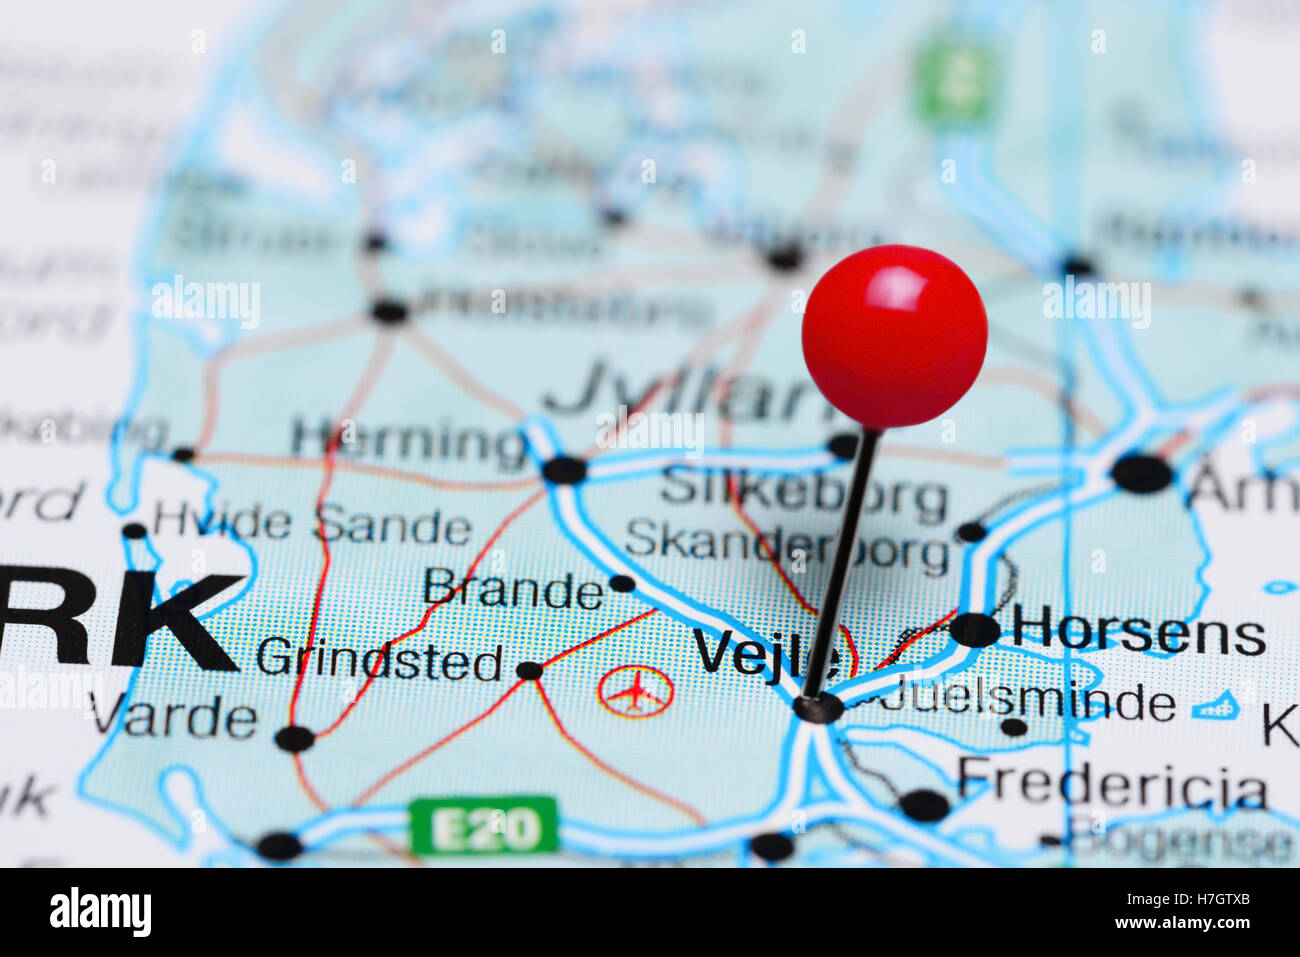 Vejle pinned on a map of Denmark Stock Photo Royalty Free Image